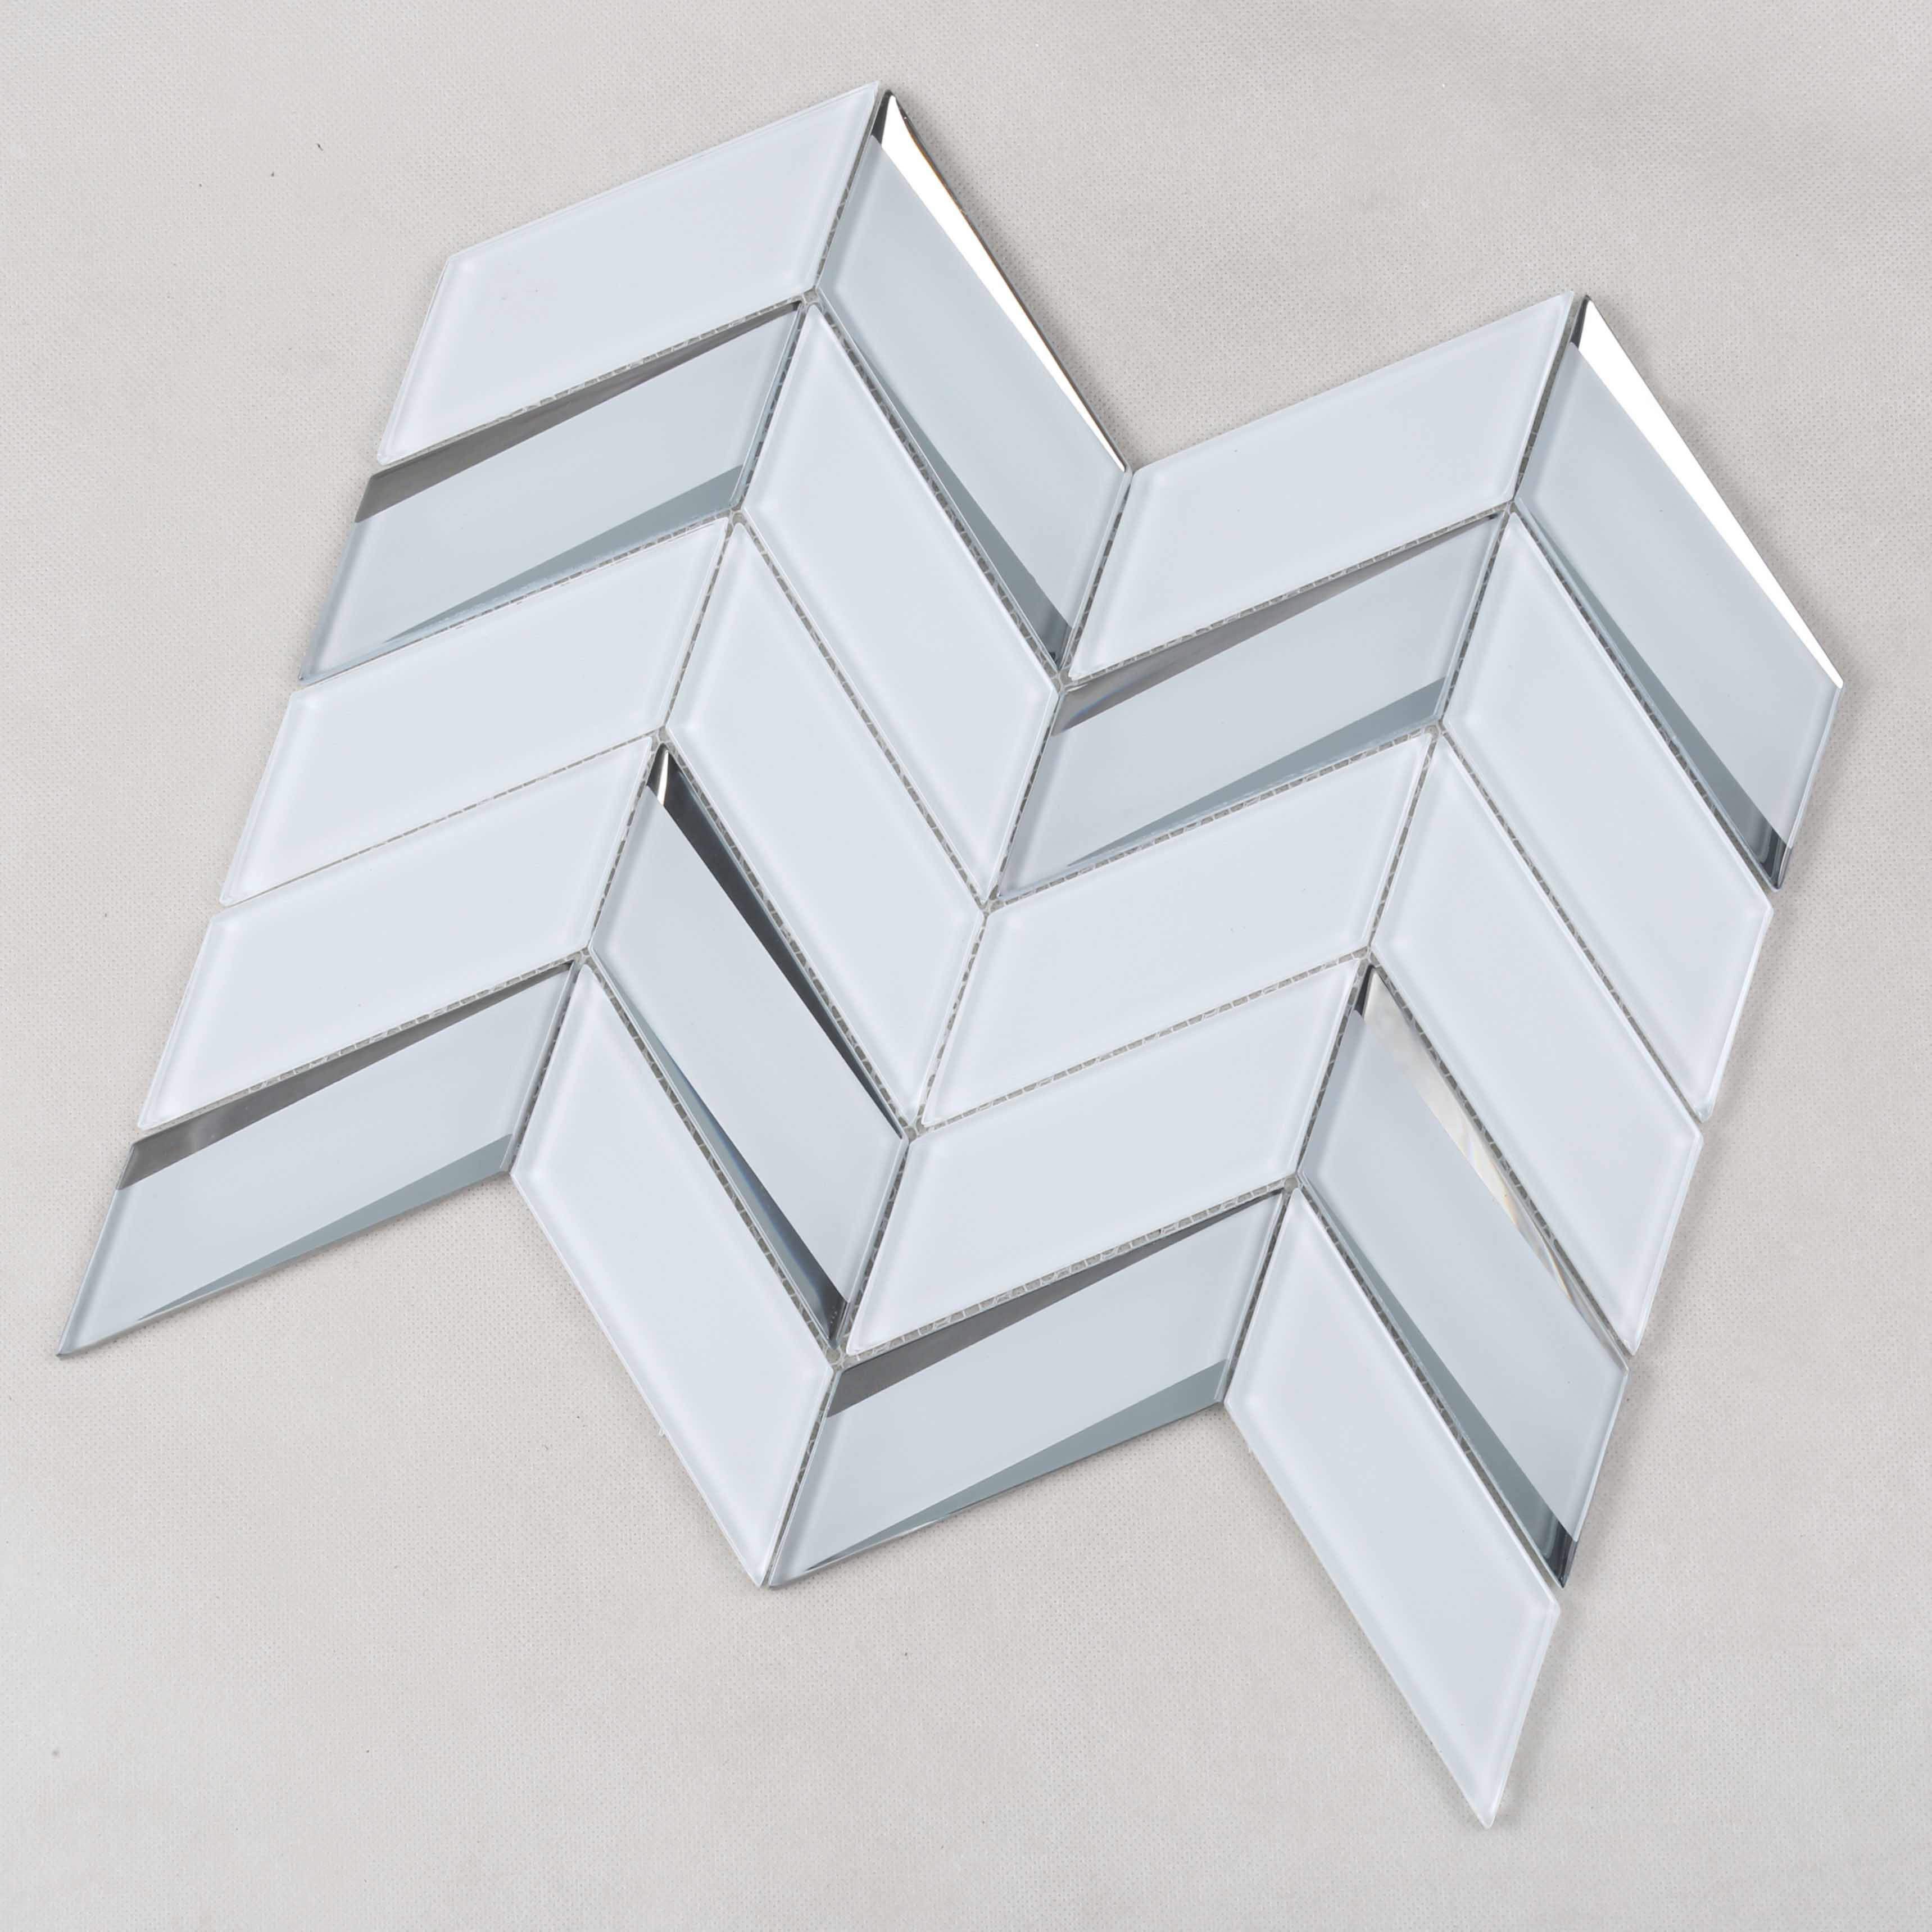 news-Heng Xing-Heng Xing 3x3 3d tile Suppliers for bathroom-img